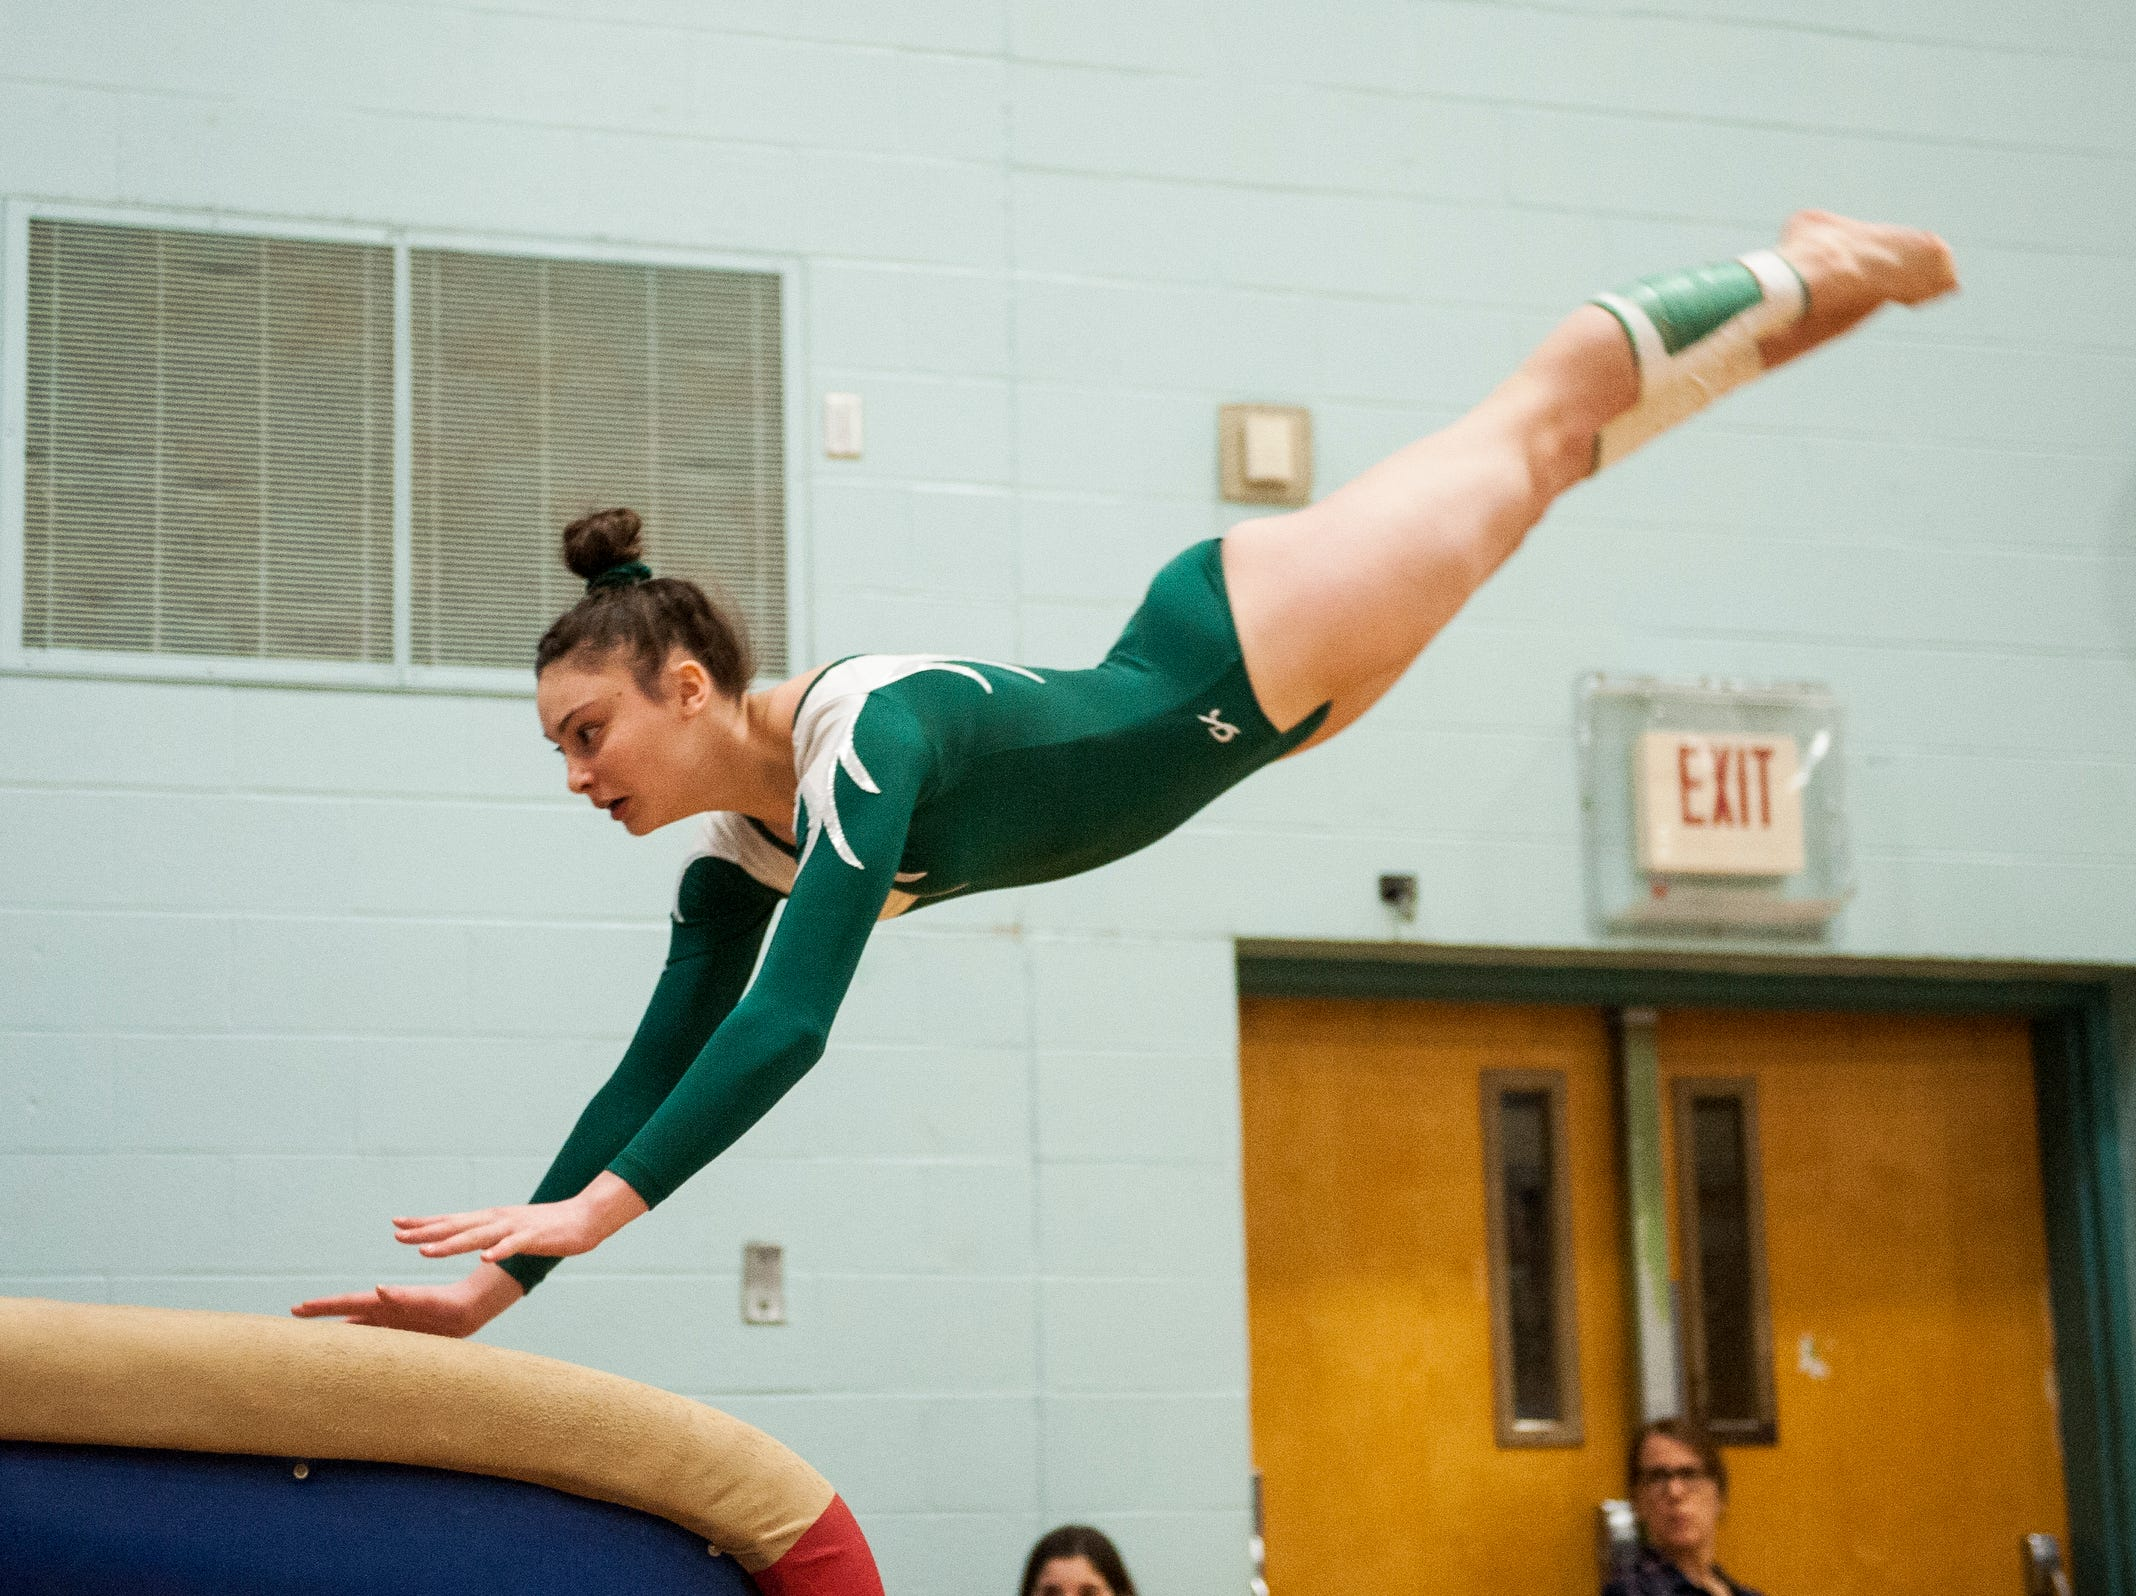 St. Johnsbury's Lizzy Jones competes in the vault during the 2019 high school gymnastics championship at Essex High School on Saturday afternoon February 16, 2019 in Essex, Vermont.